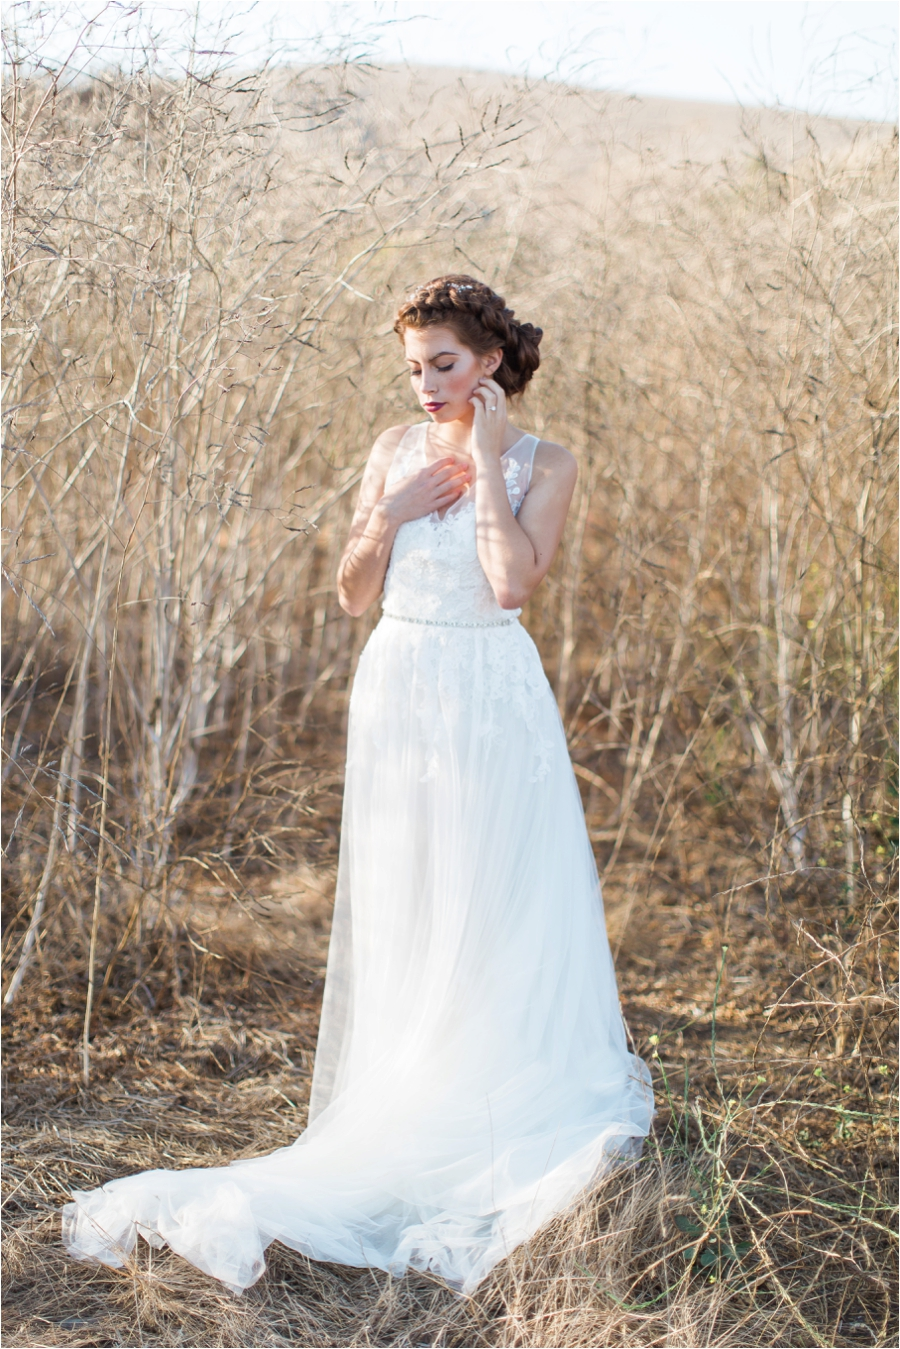 San-Luis-Obispo-wedding-photographer-watters-bridal-gown-taylor-kinzie-photography_0894